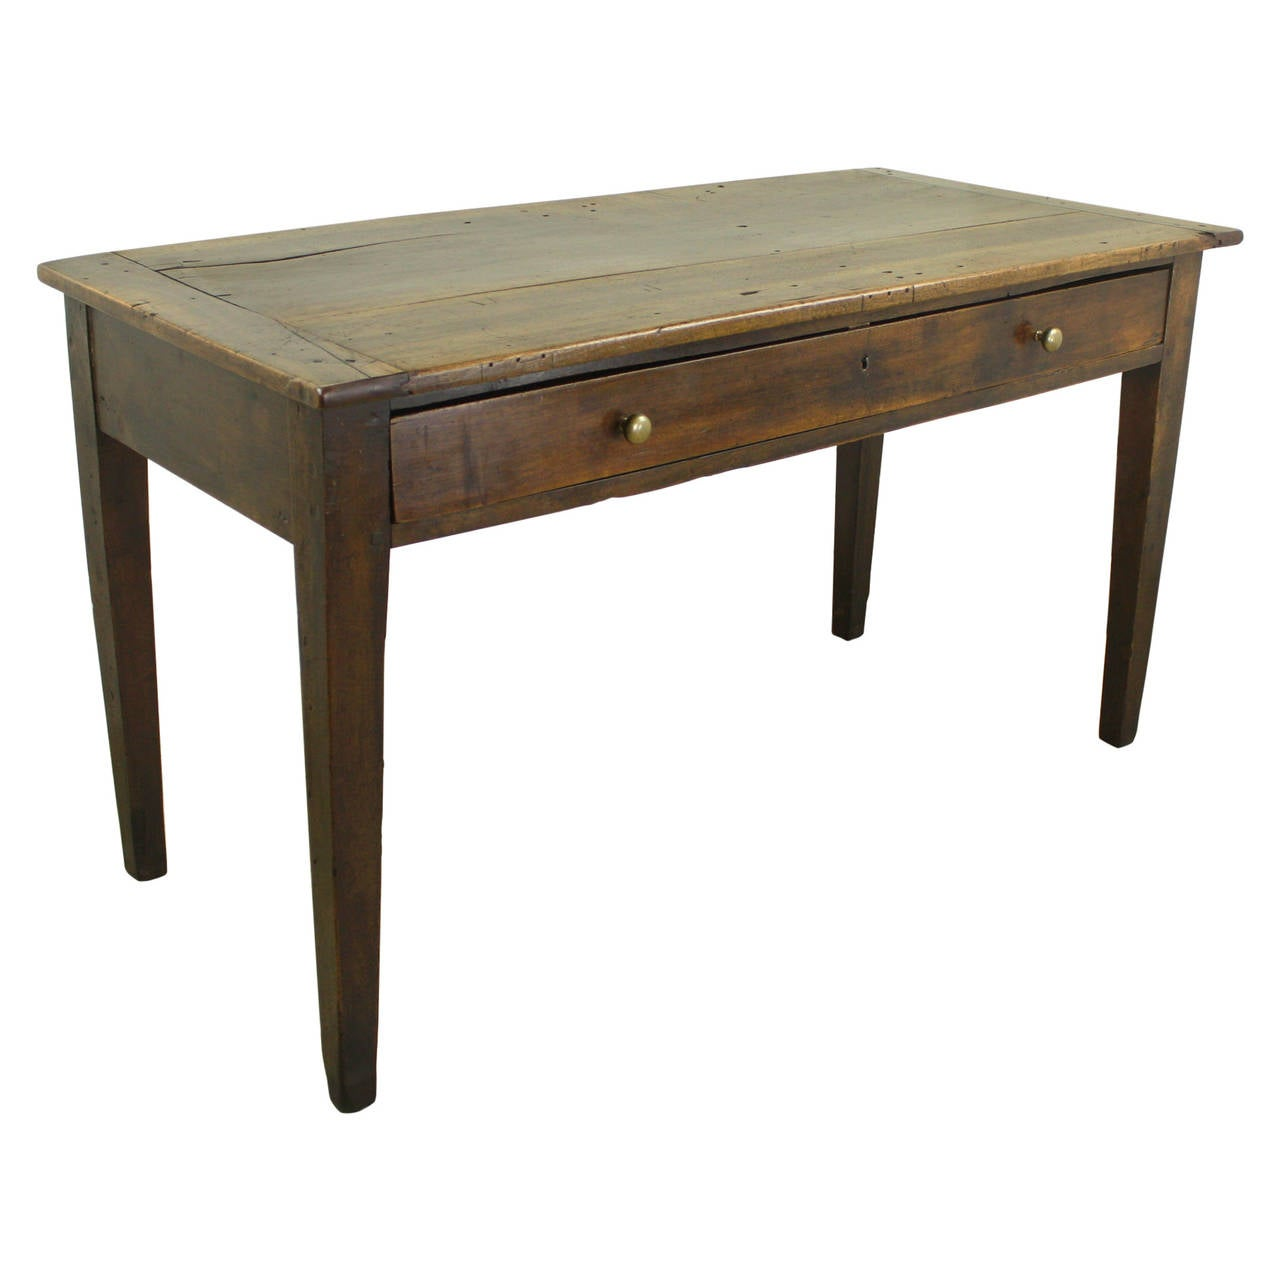 writing tables A table is an item of furniture with a flat top and one or more legs drum tables are round tables introduced for writing, with drawers around the platform.